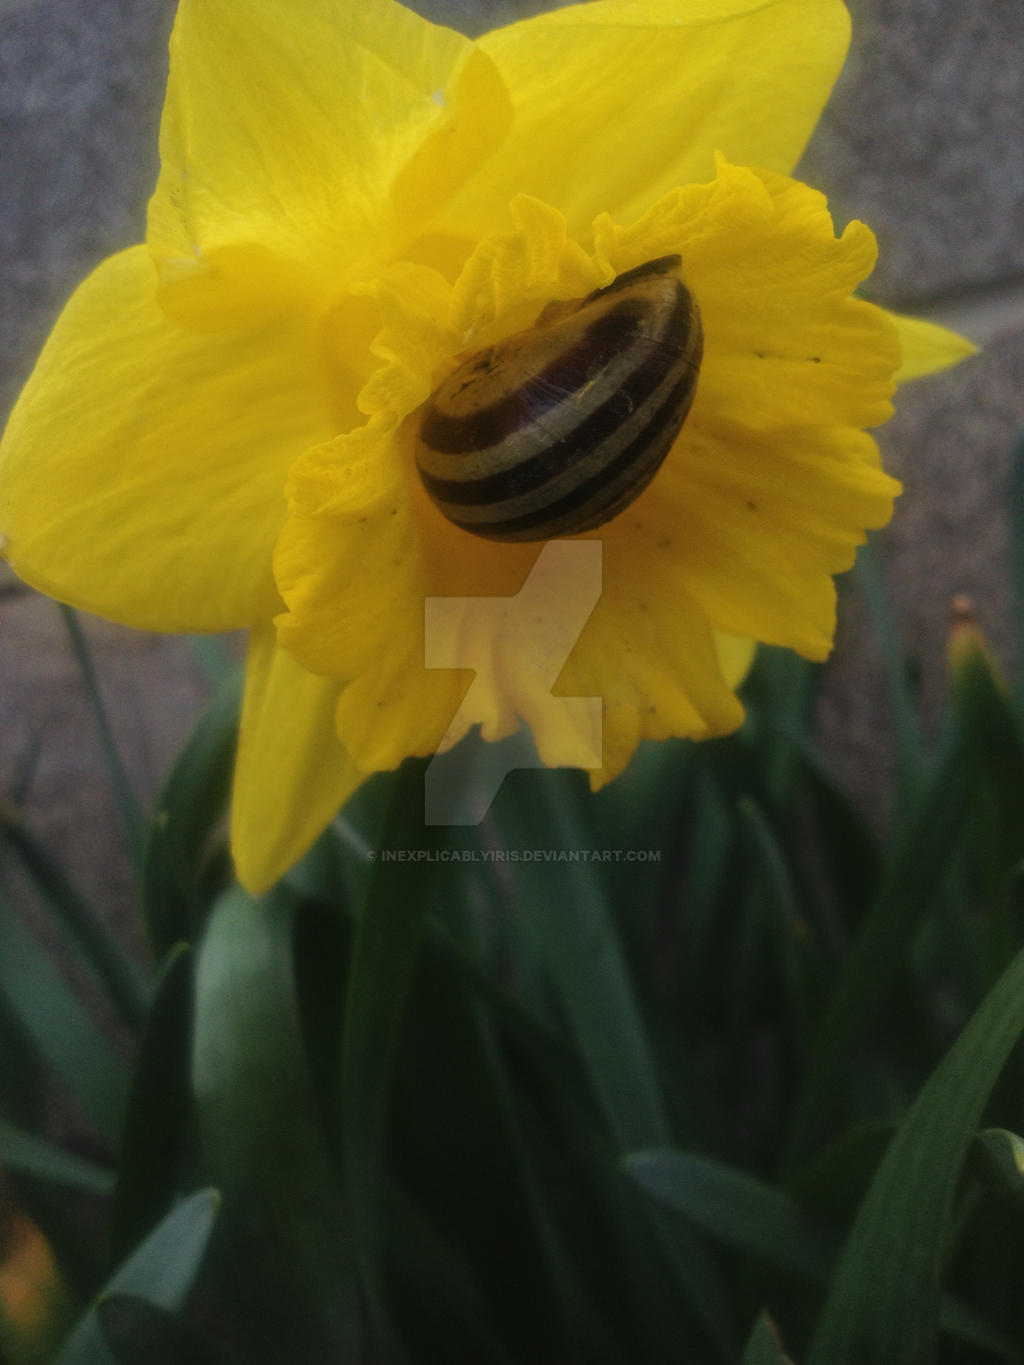 Daffodilling snail vers 3 by InexplicablyIris